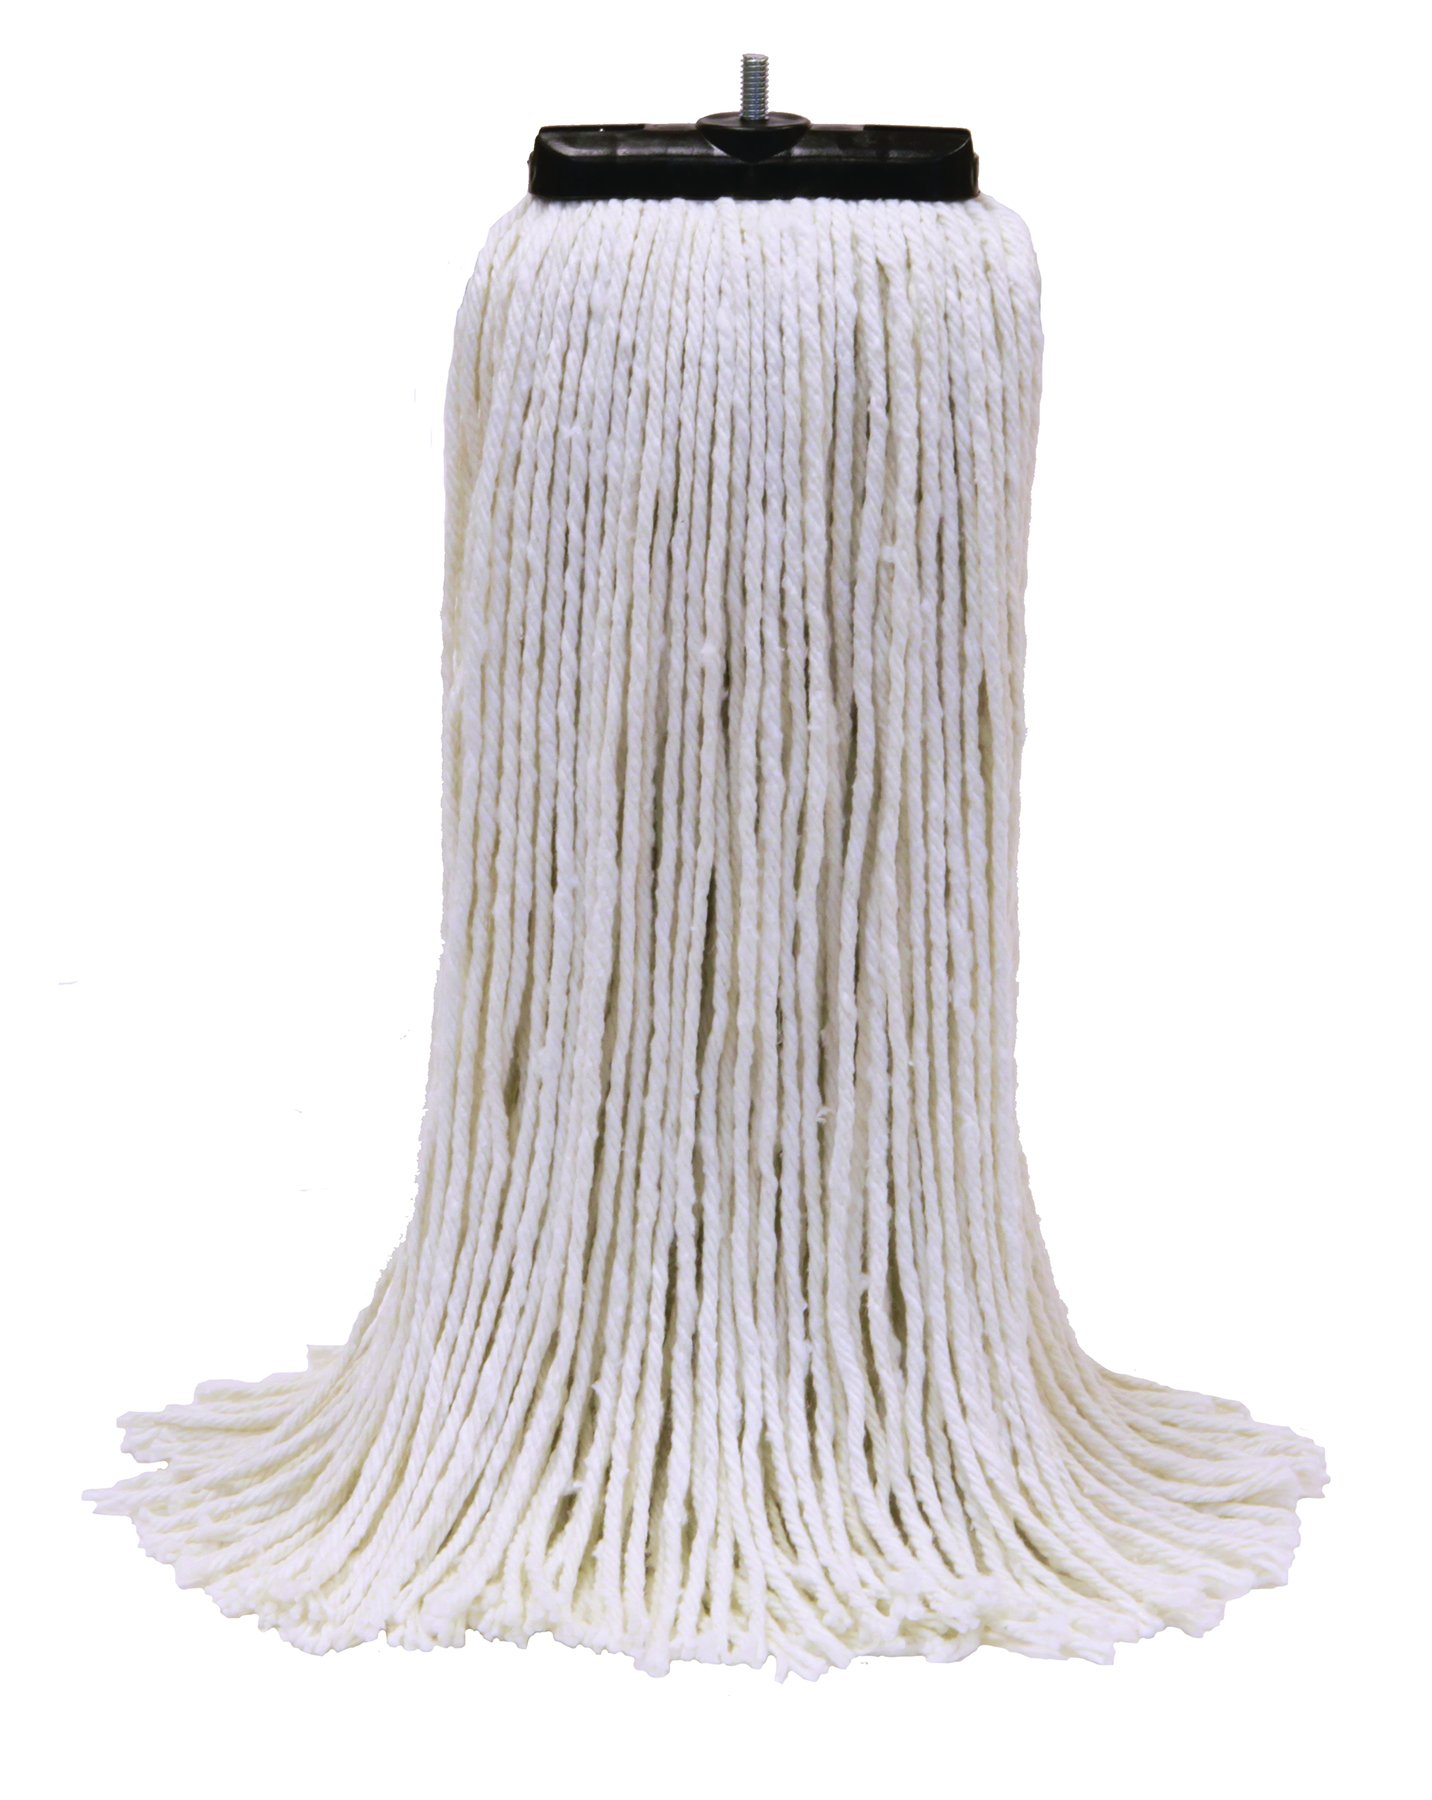 O'Cedar Commercial 97831-3 MaxiRayon Screw-On Mop, 24 oz (Pack of 3)